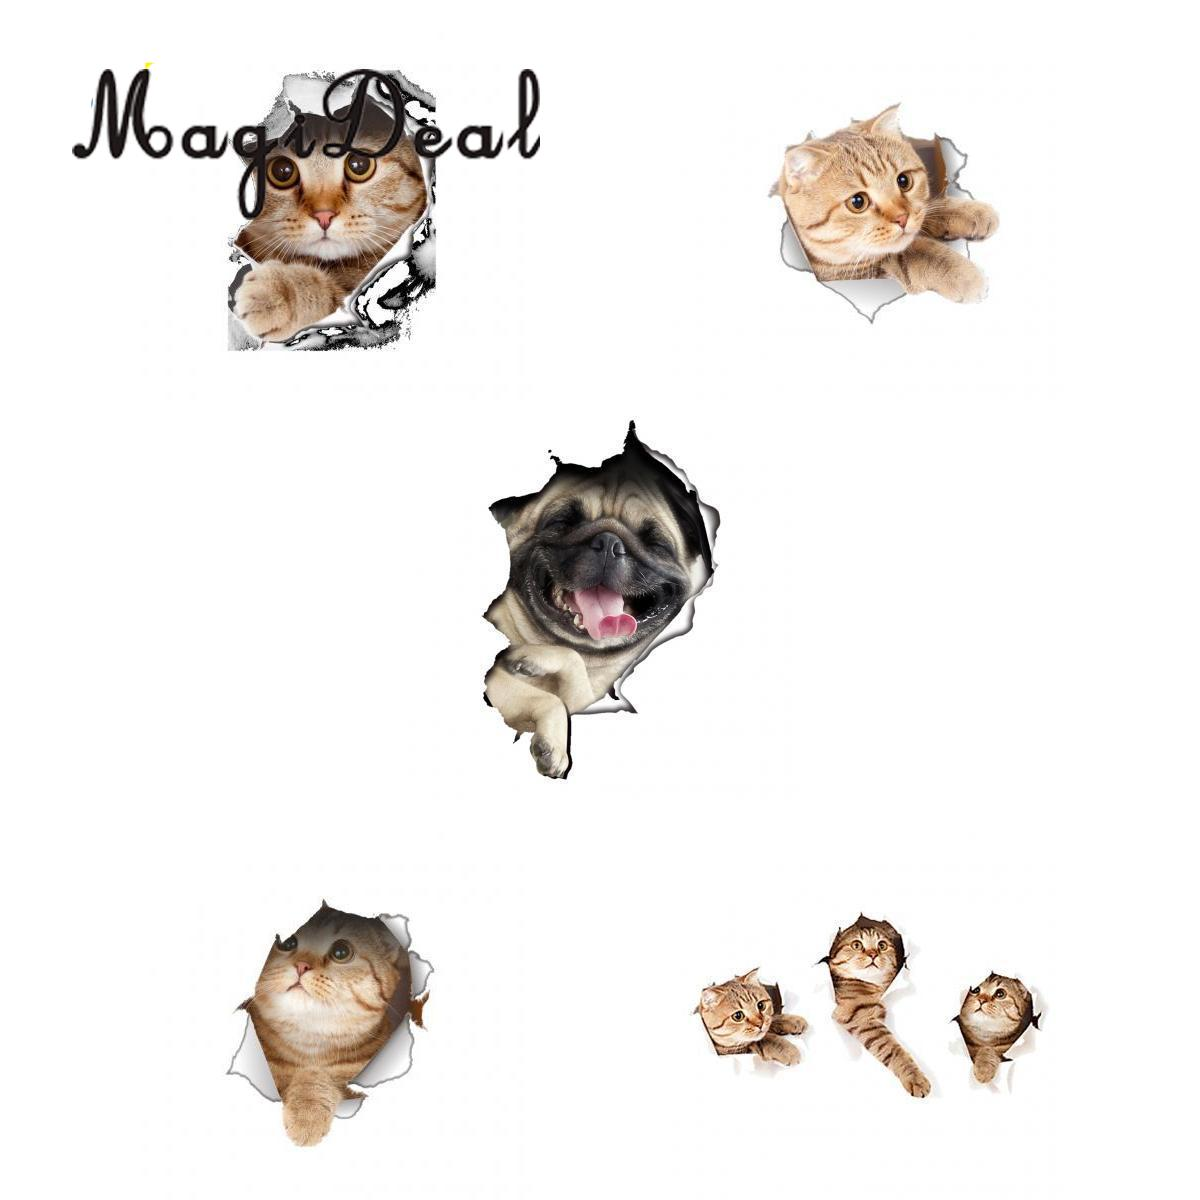 5Pcs 3D Cats Wall Decals Removable Toilet Stickers Hole View Vivid Dogs Decals Art Sticker for Bathroom Kids Room Refrigerator